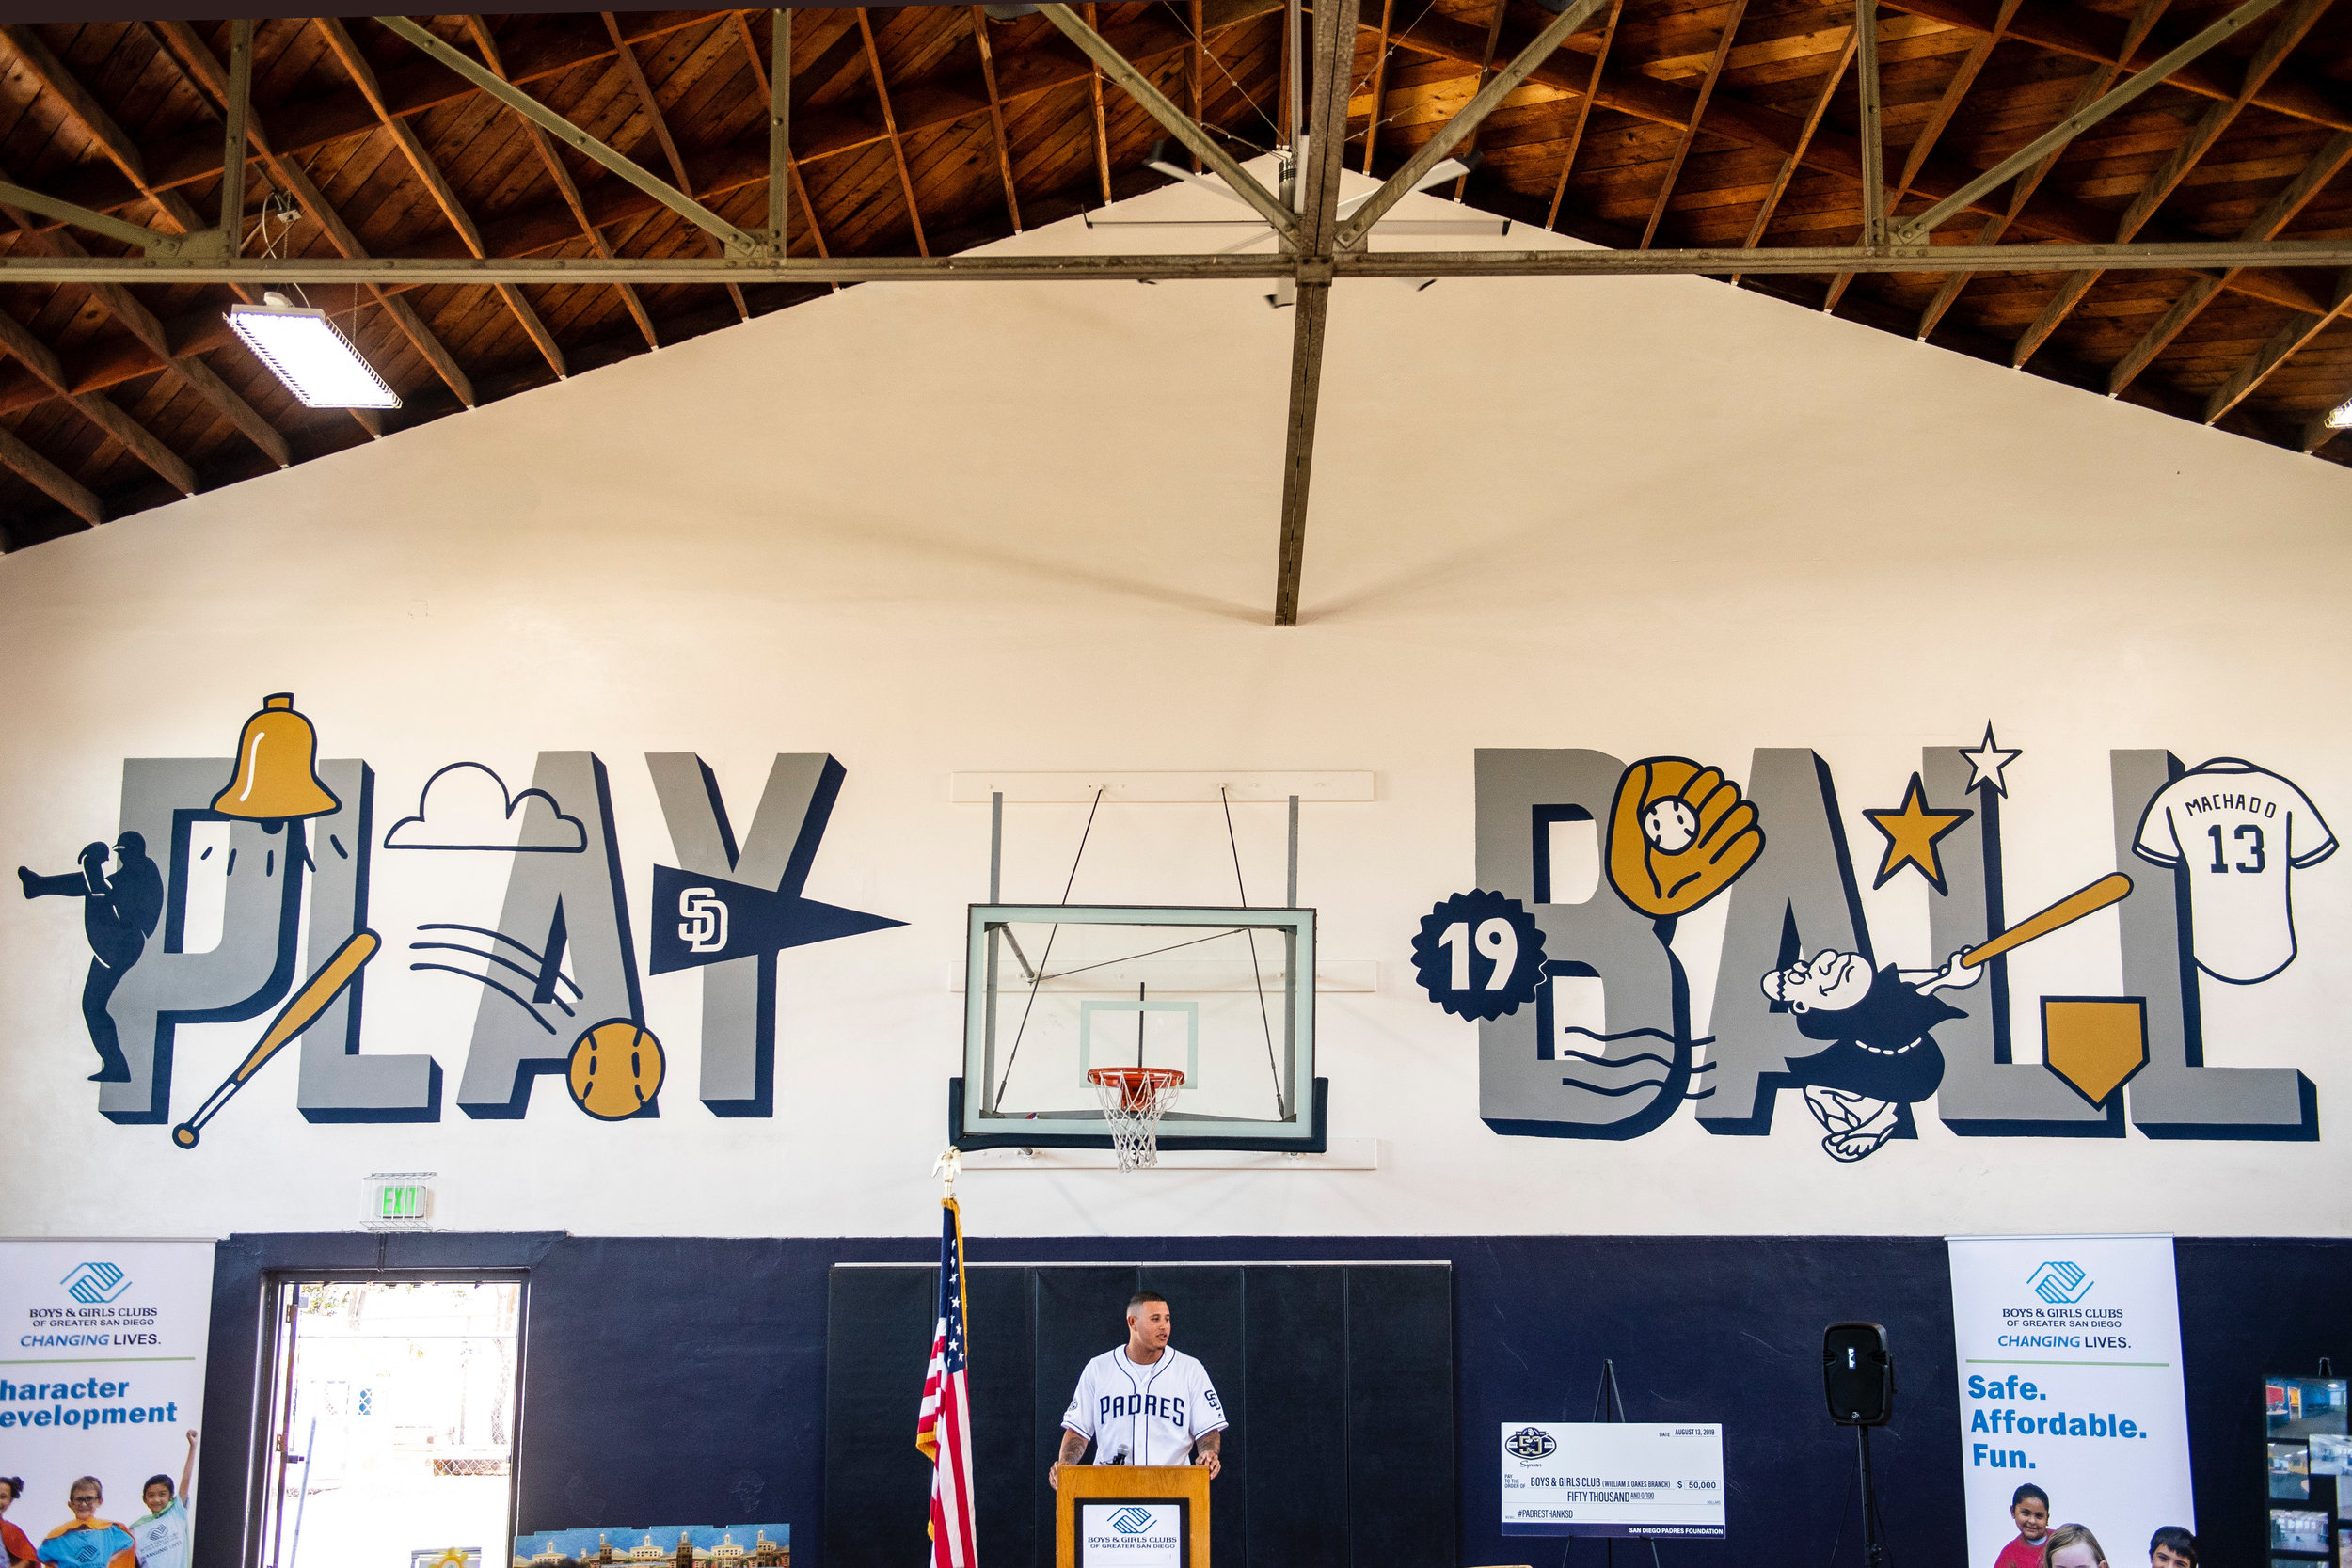 Padres Customer Lettering Mural Play Ball MLB with Logos and Players Represented